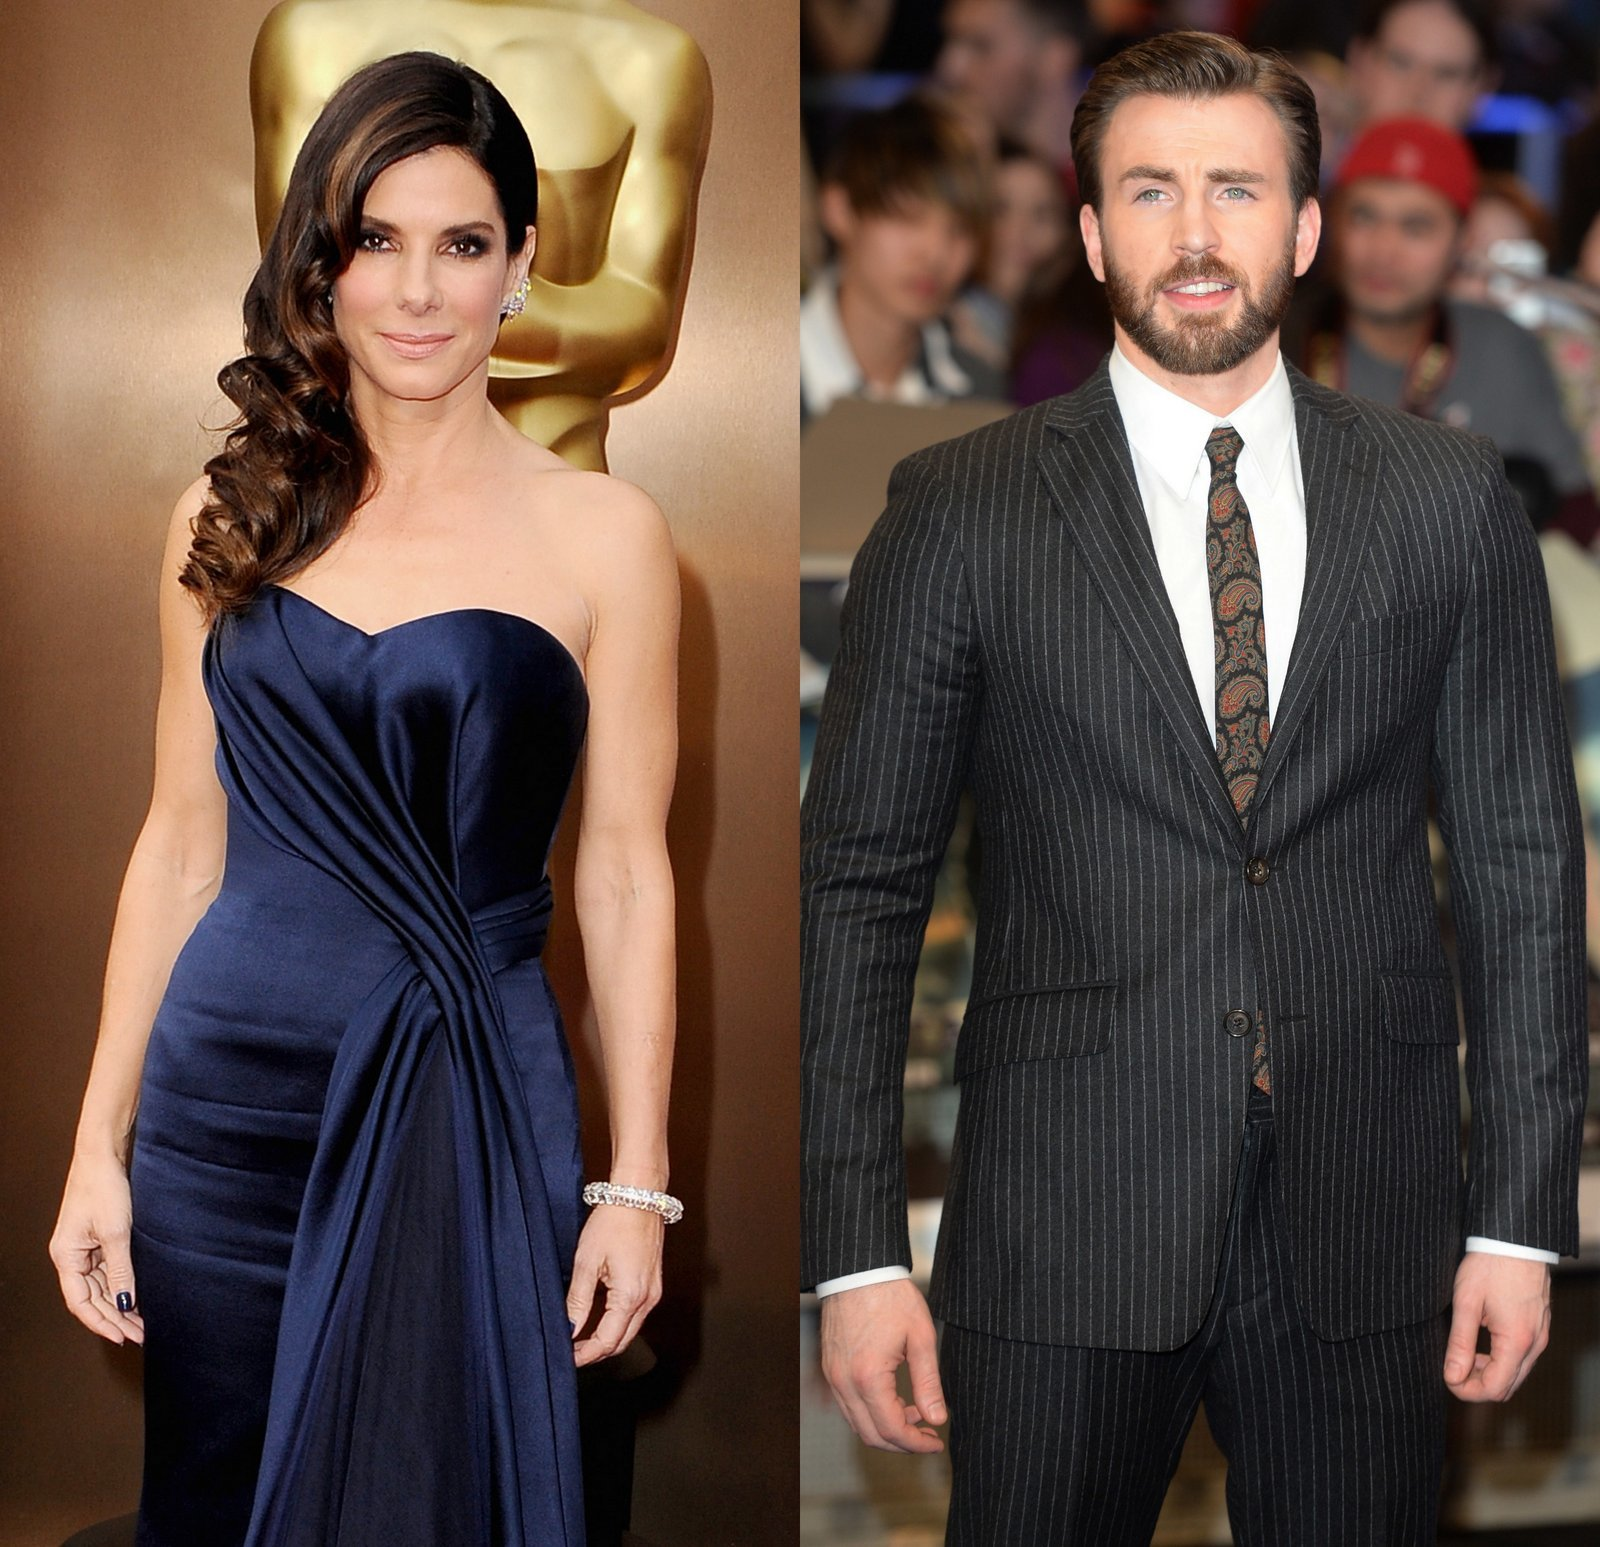 Sandra Bullock and Chris Evans